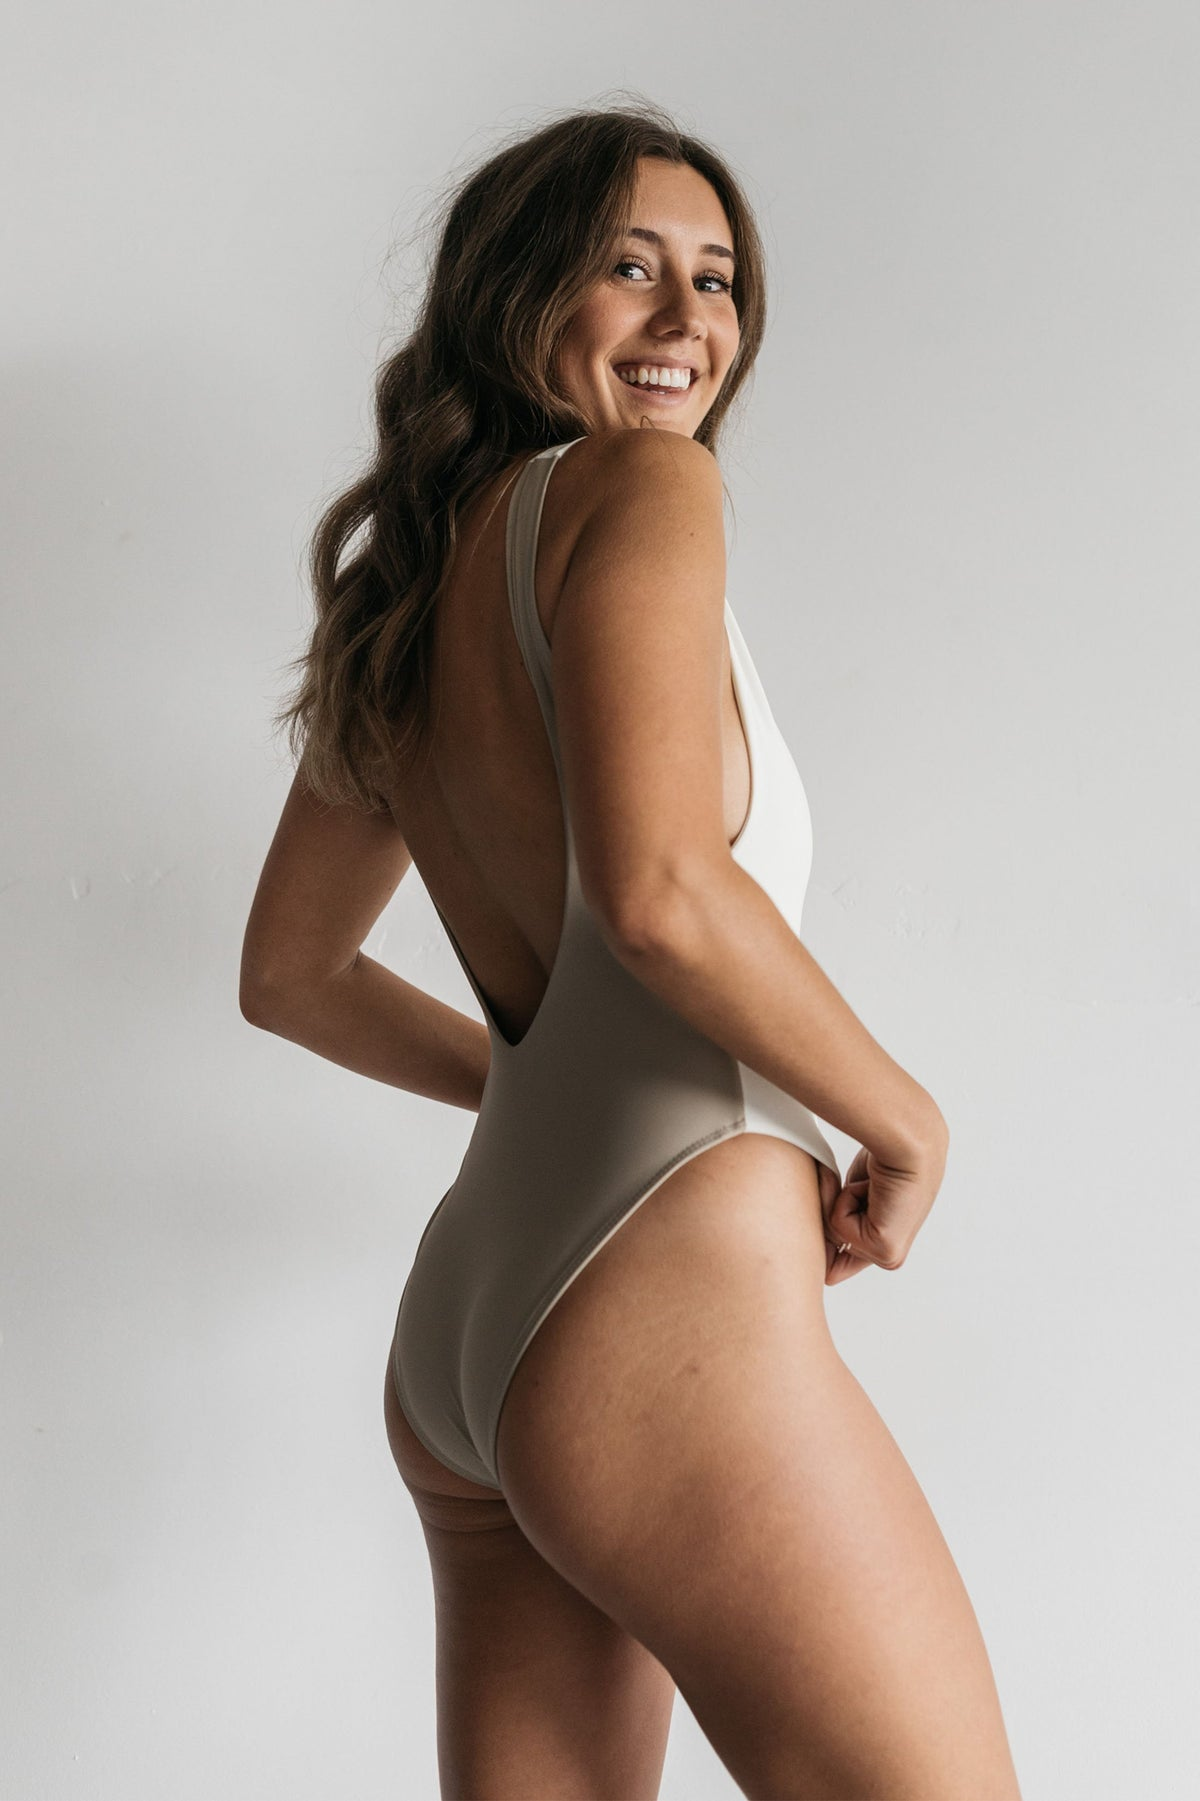 A woman smiling looking over her shoulder wearing a color blocked white and nude one piece swimsuit with a low back and minimal coverage.